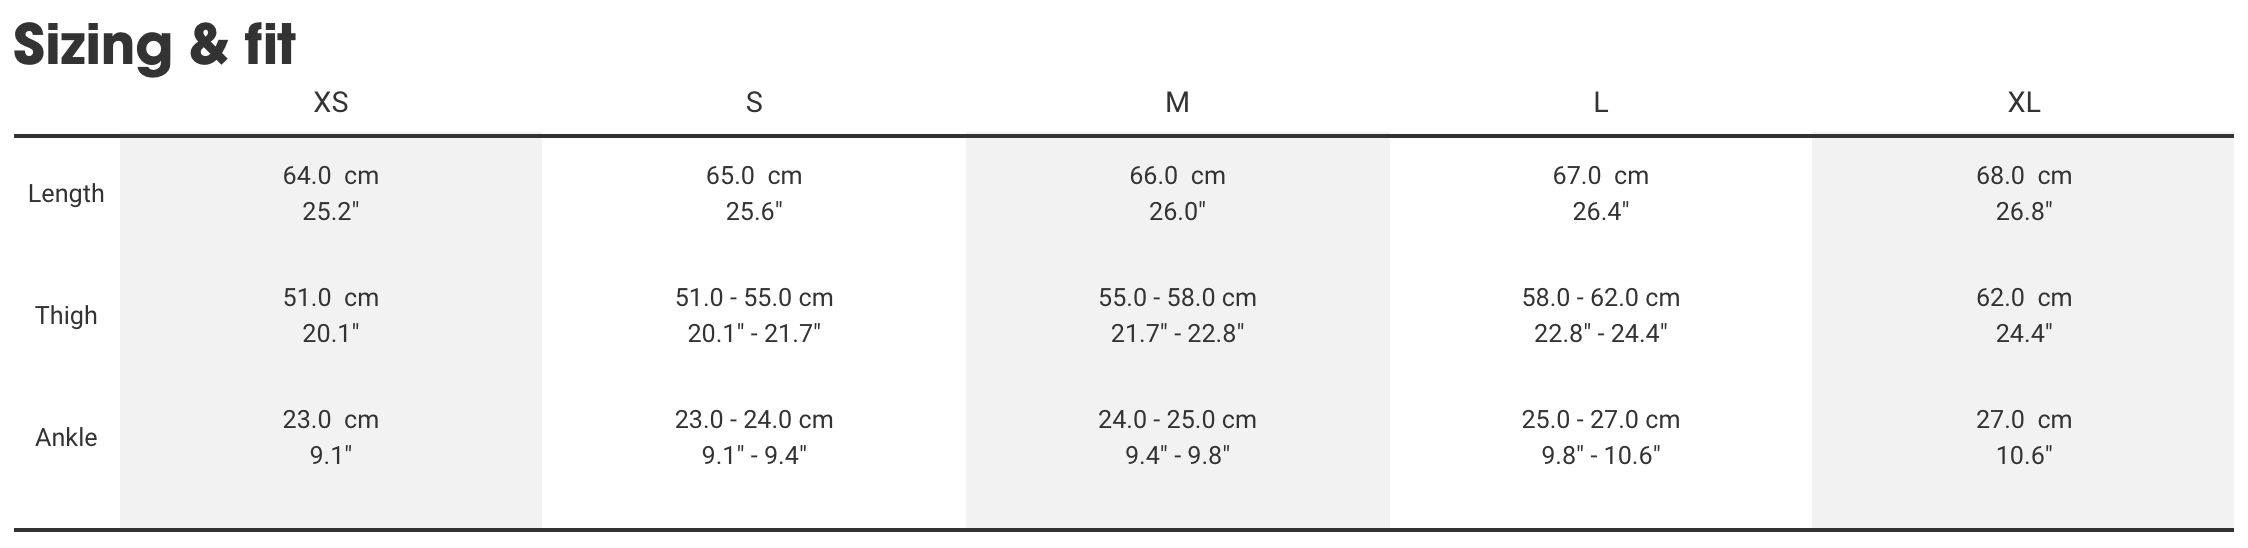 Bontrager men's bottoms sizing chart